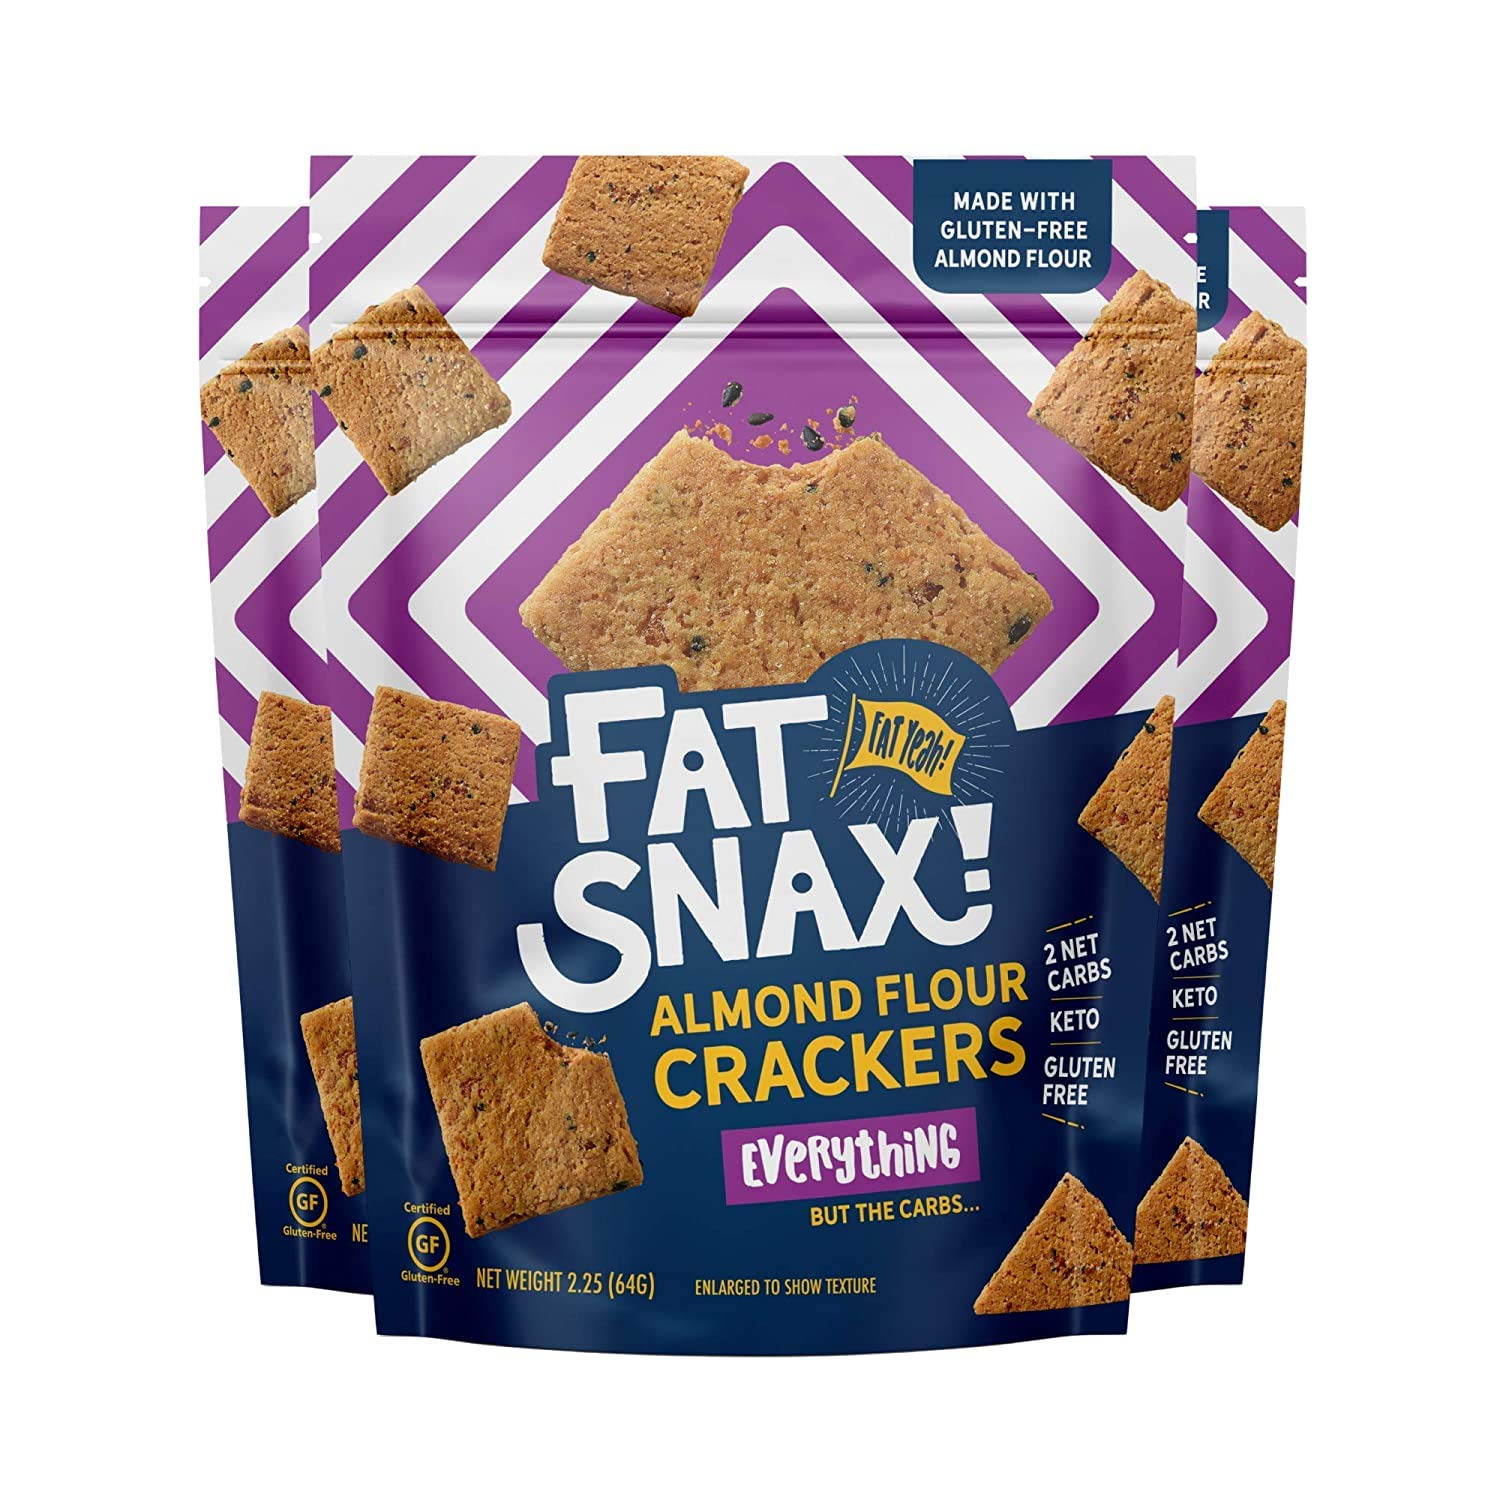 Fat Snax Almond Flour Crackers - Low-Carb and Gluten-Free Keto Crackers with 7g of Healthy Fats - 1-2 Net Carb Keto Snacks - (Everything, 3-Pack)